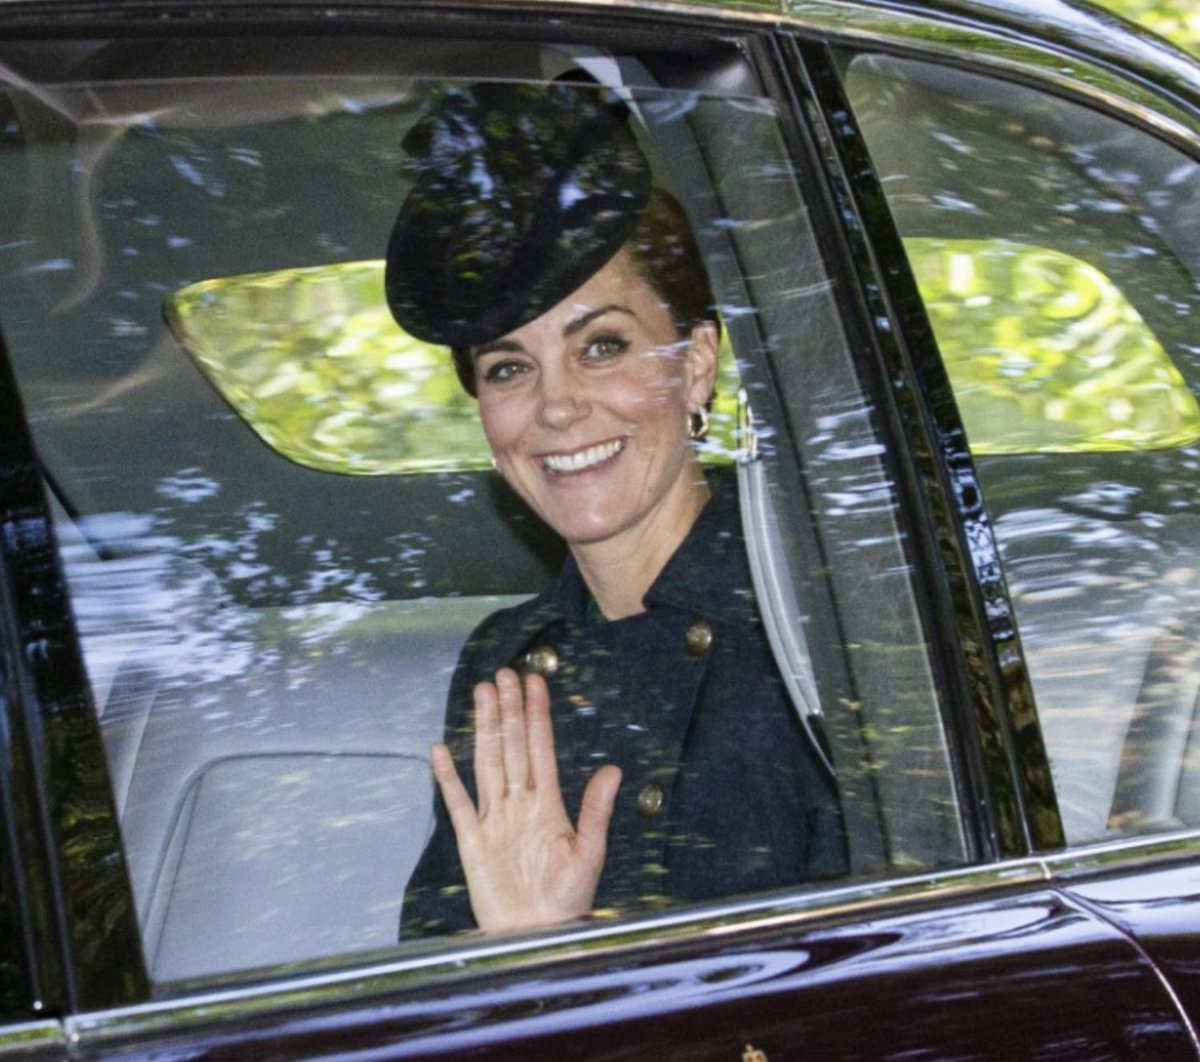 @PA Catherine, Duchess of Cambridge, waves as shes driven to Crathie Kirk Church for the service in Crathie, Aberdeenshire - with the The Queen 📸 @GettyImages mirror.co.uk/news/uk-news/k…